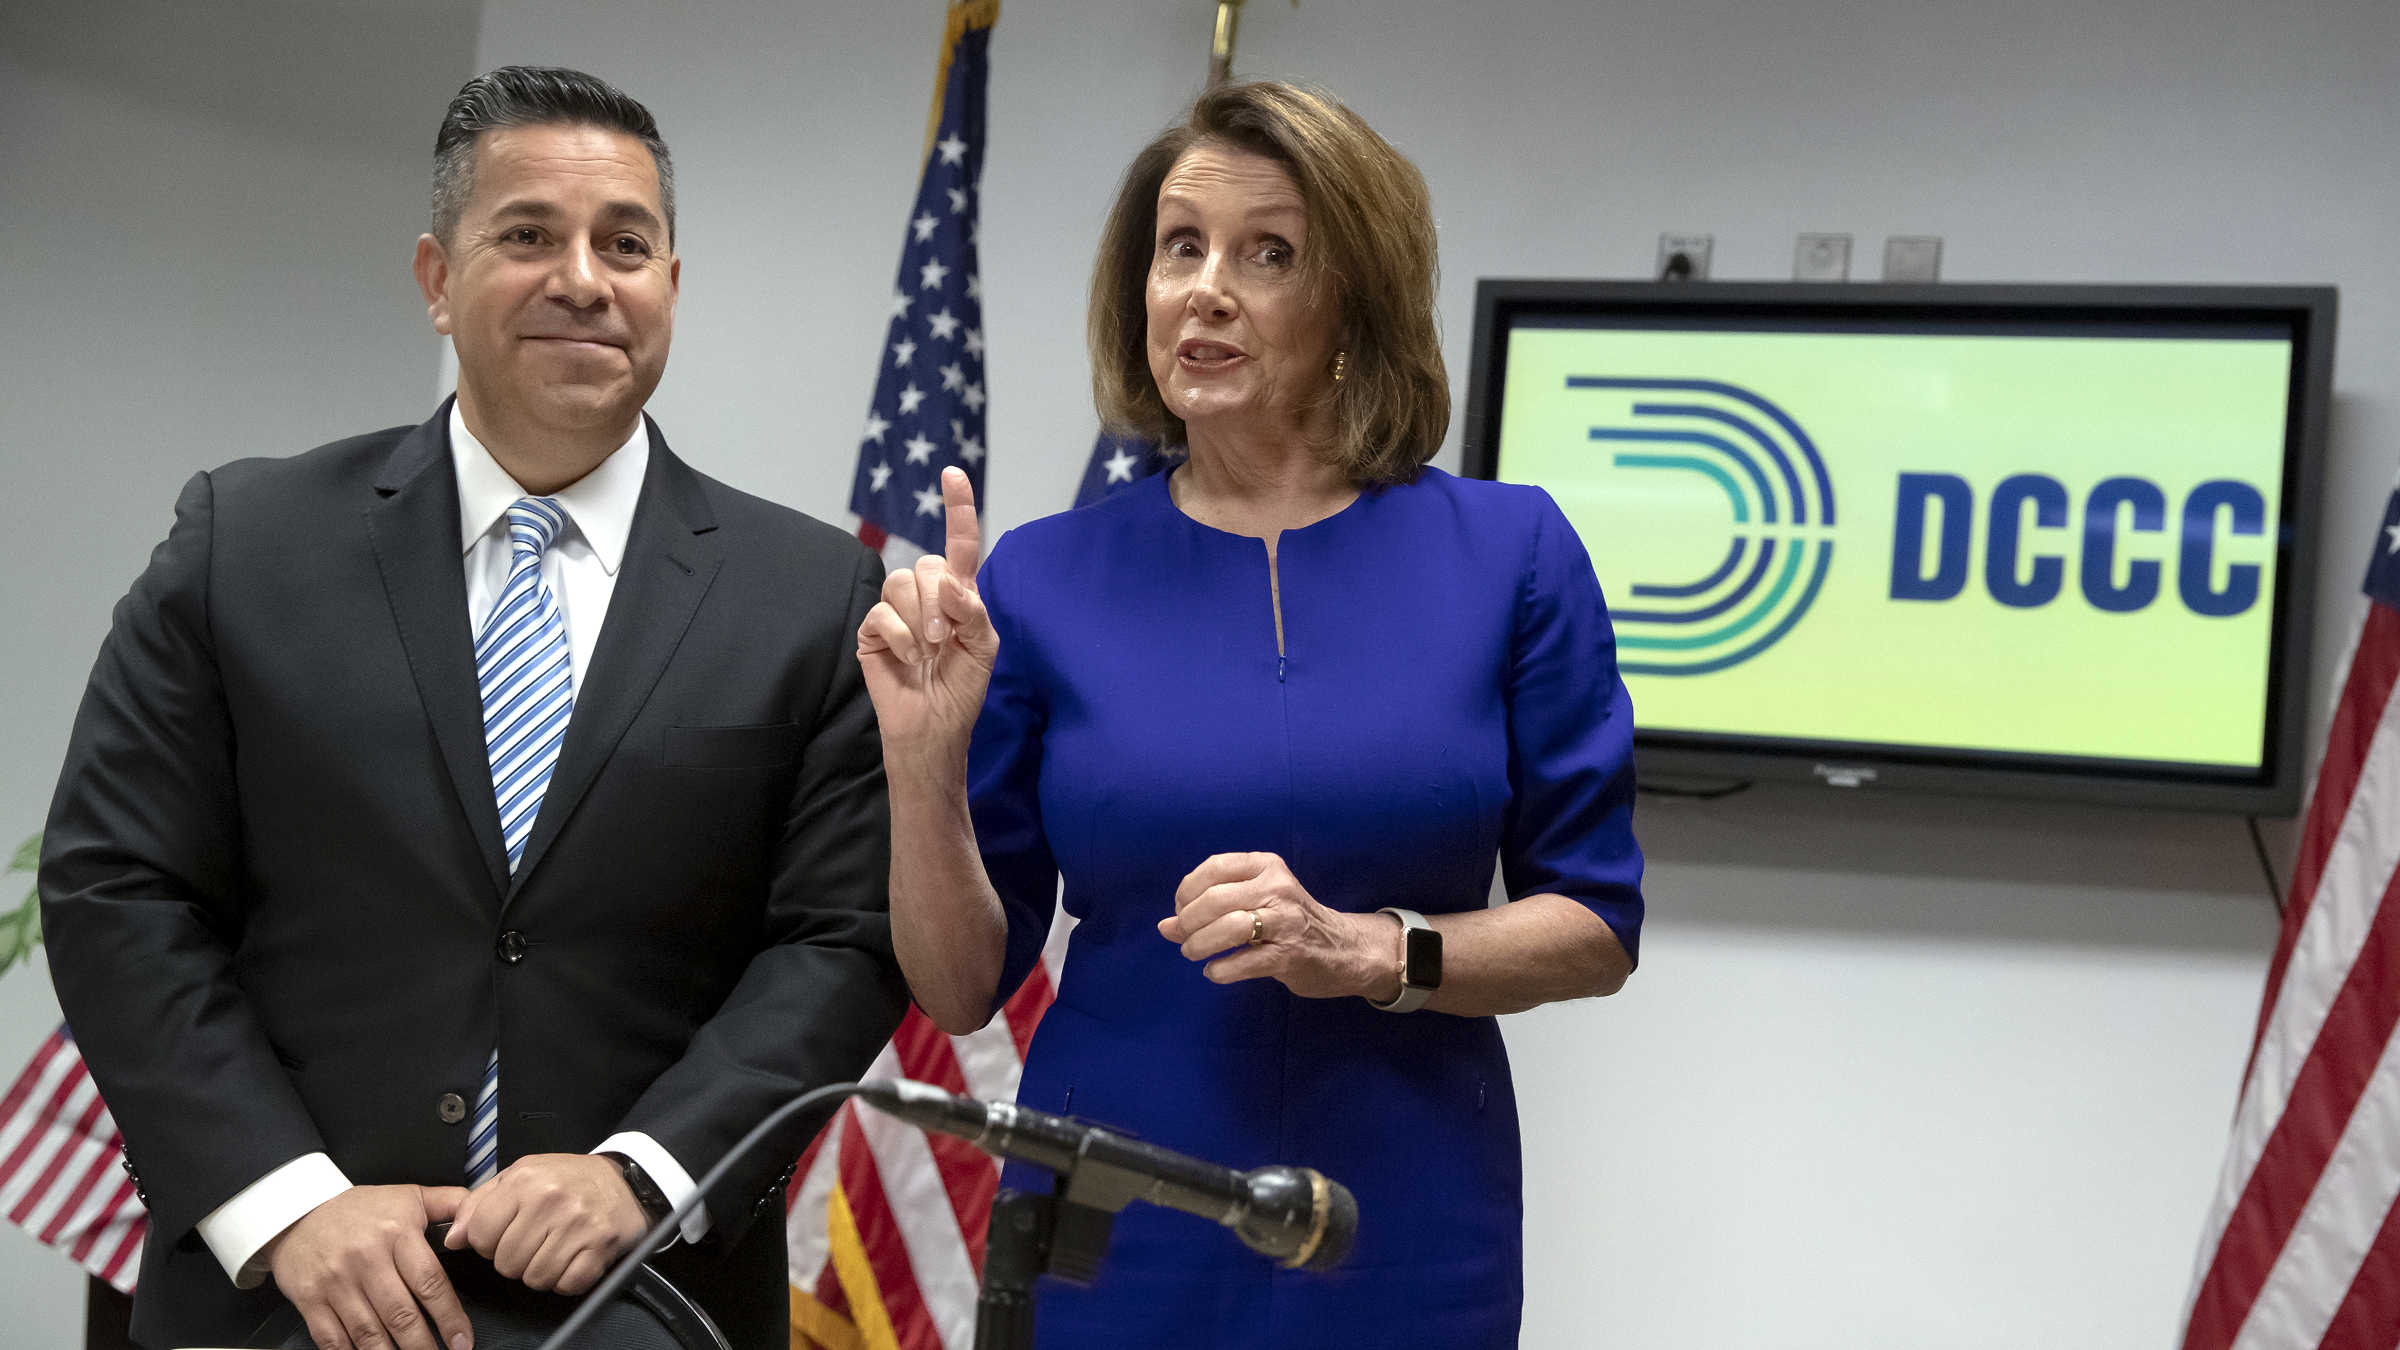 House Democratic Leader Nancy Pelosi of California, center, and Democratic Congressional Campaign Committee Chairman Rep. Ben Ray Lujan, D-N.M., left, meet with reporters on Election Day at the Democratic National Committee headquarters in Washington, Tuesda...</blockquote>